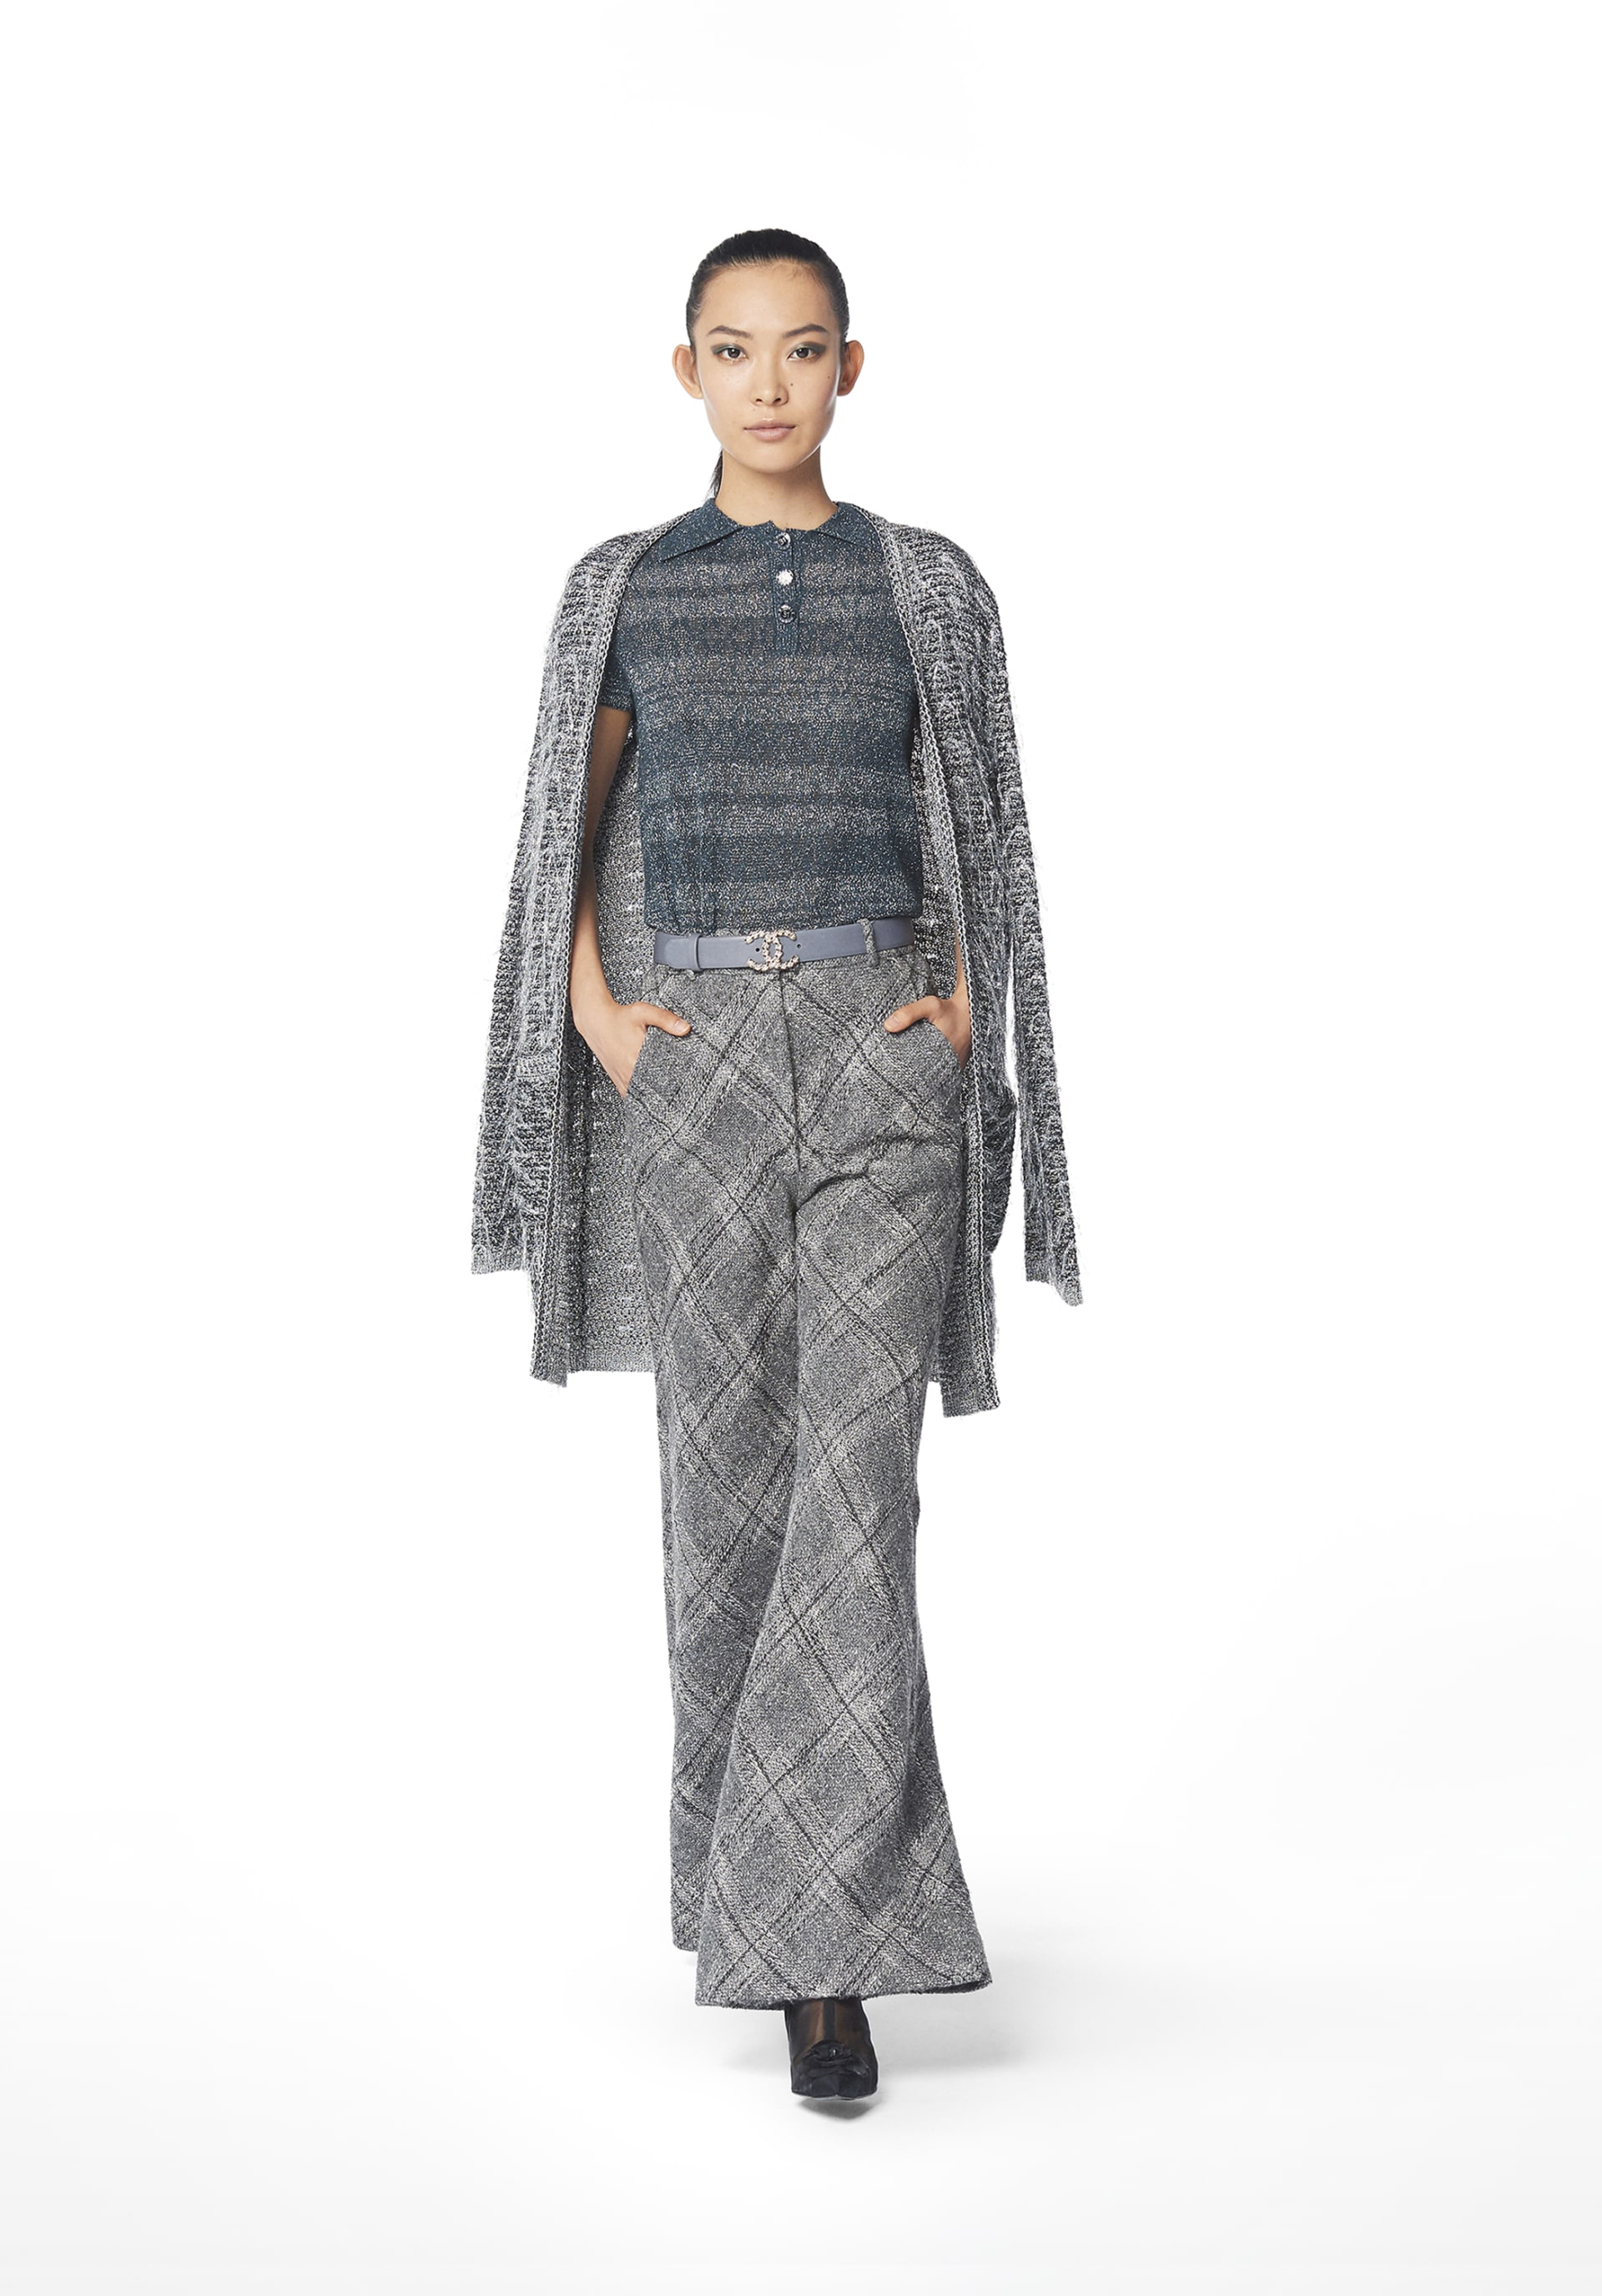 View 1 - Look 57 - Spring-Summer 2019 Pre-Collection